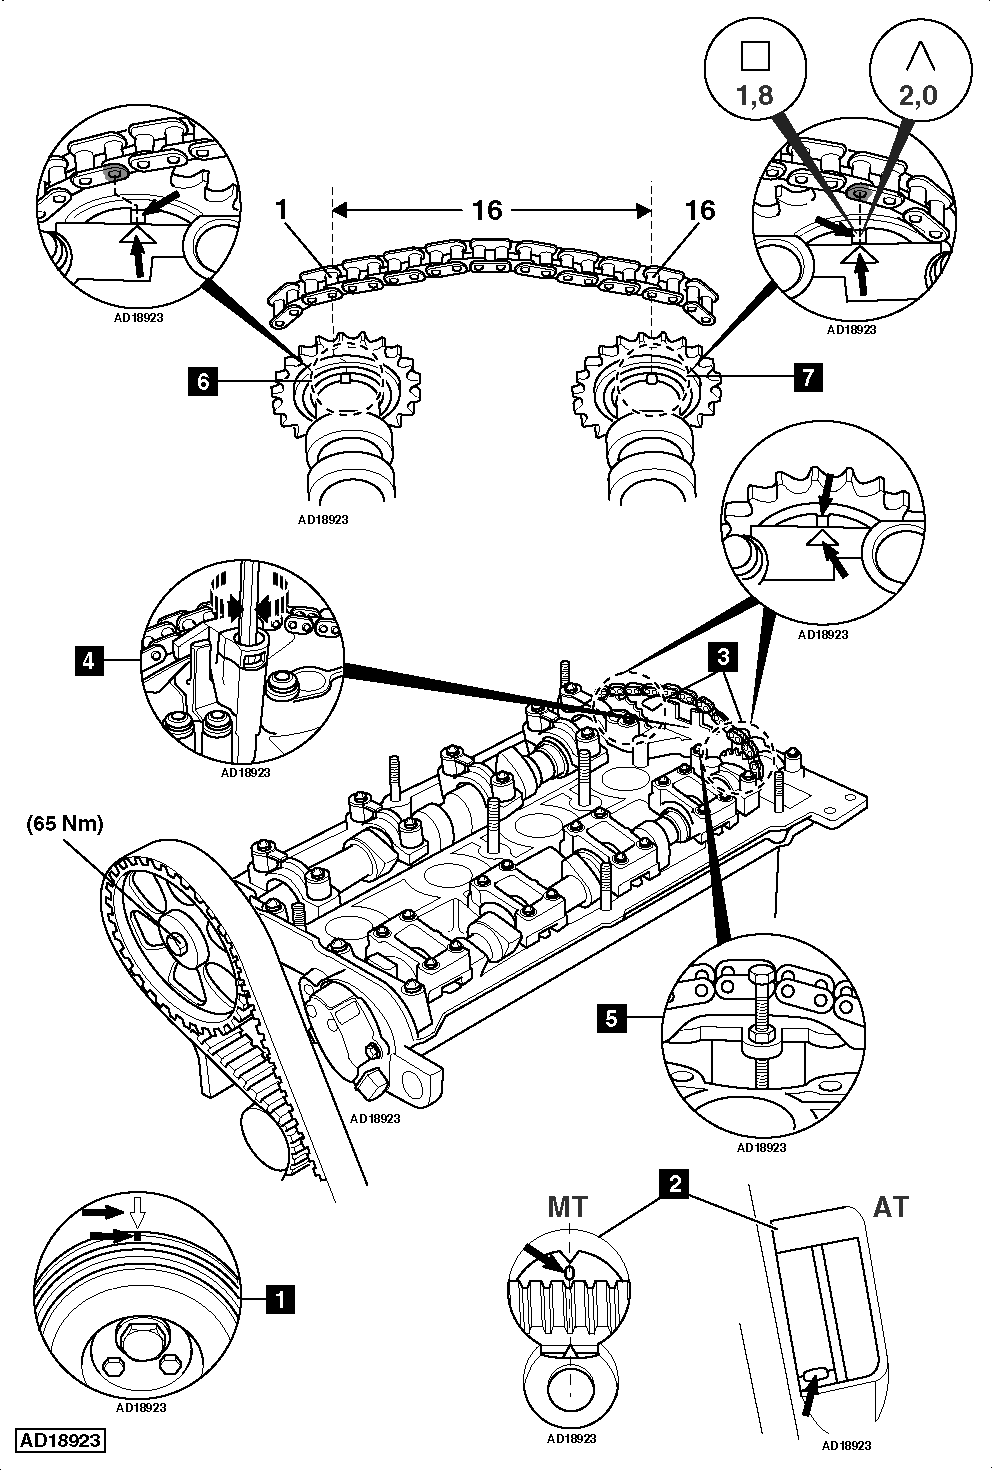 P 0900c15280076be3 besides RepairGuideContent likewise 2007 Chevrolet Silverado Oil Consumption Bulletins together with Chevy Cobalt 2 2l Engine Diagram also 6exfi Chrysler Need Timing Belt Water Pump 2002. on 07 engine crankshaft position sensor replacement